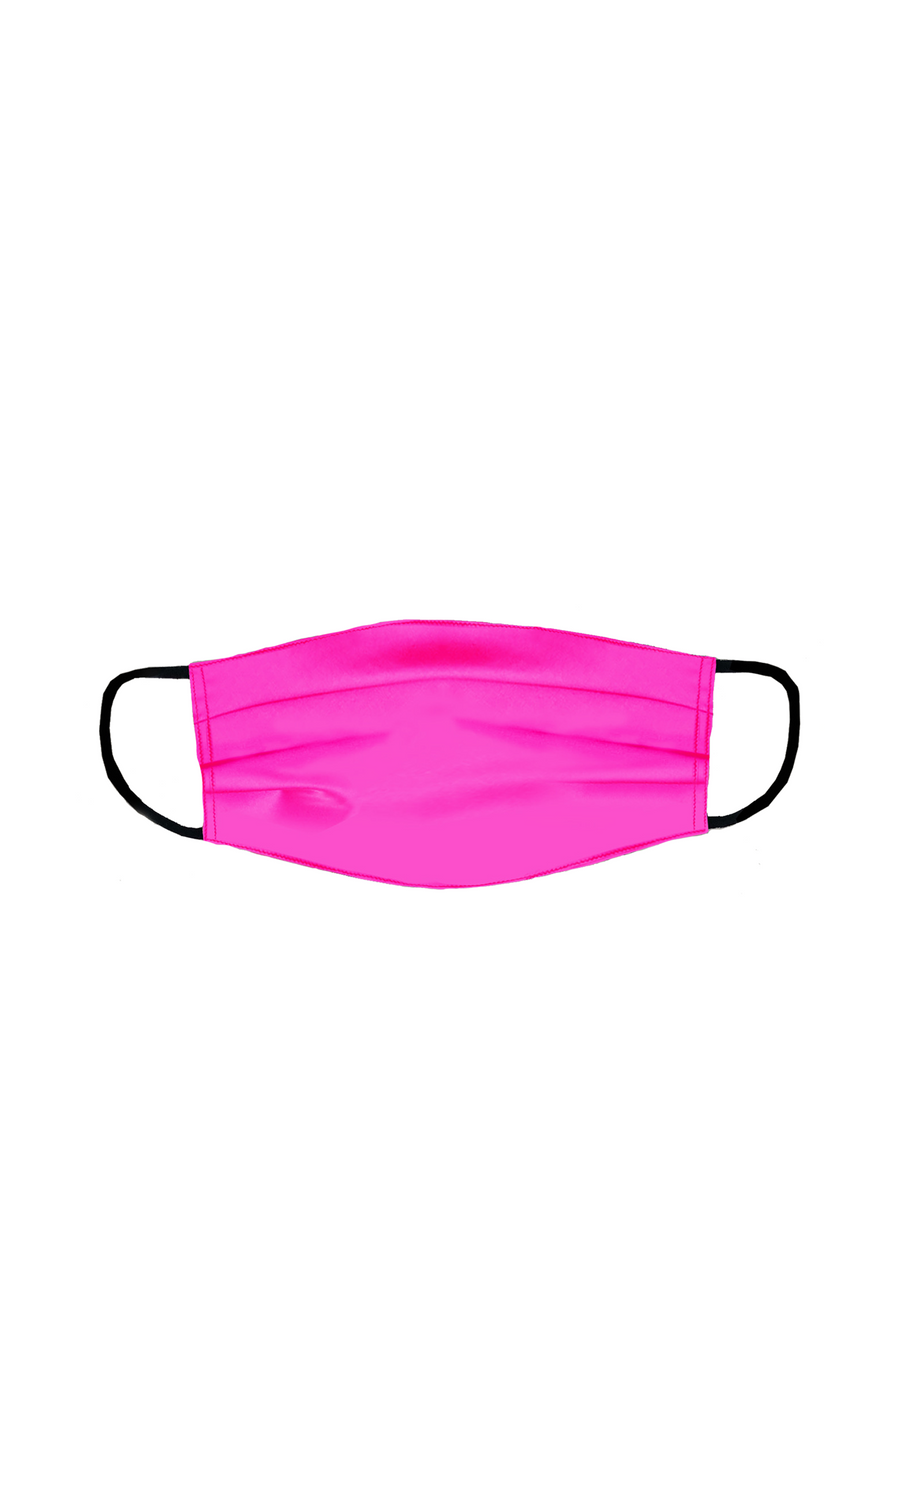 Silk Face Mask in Pink